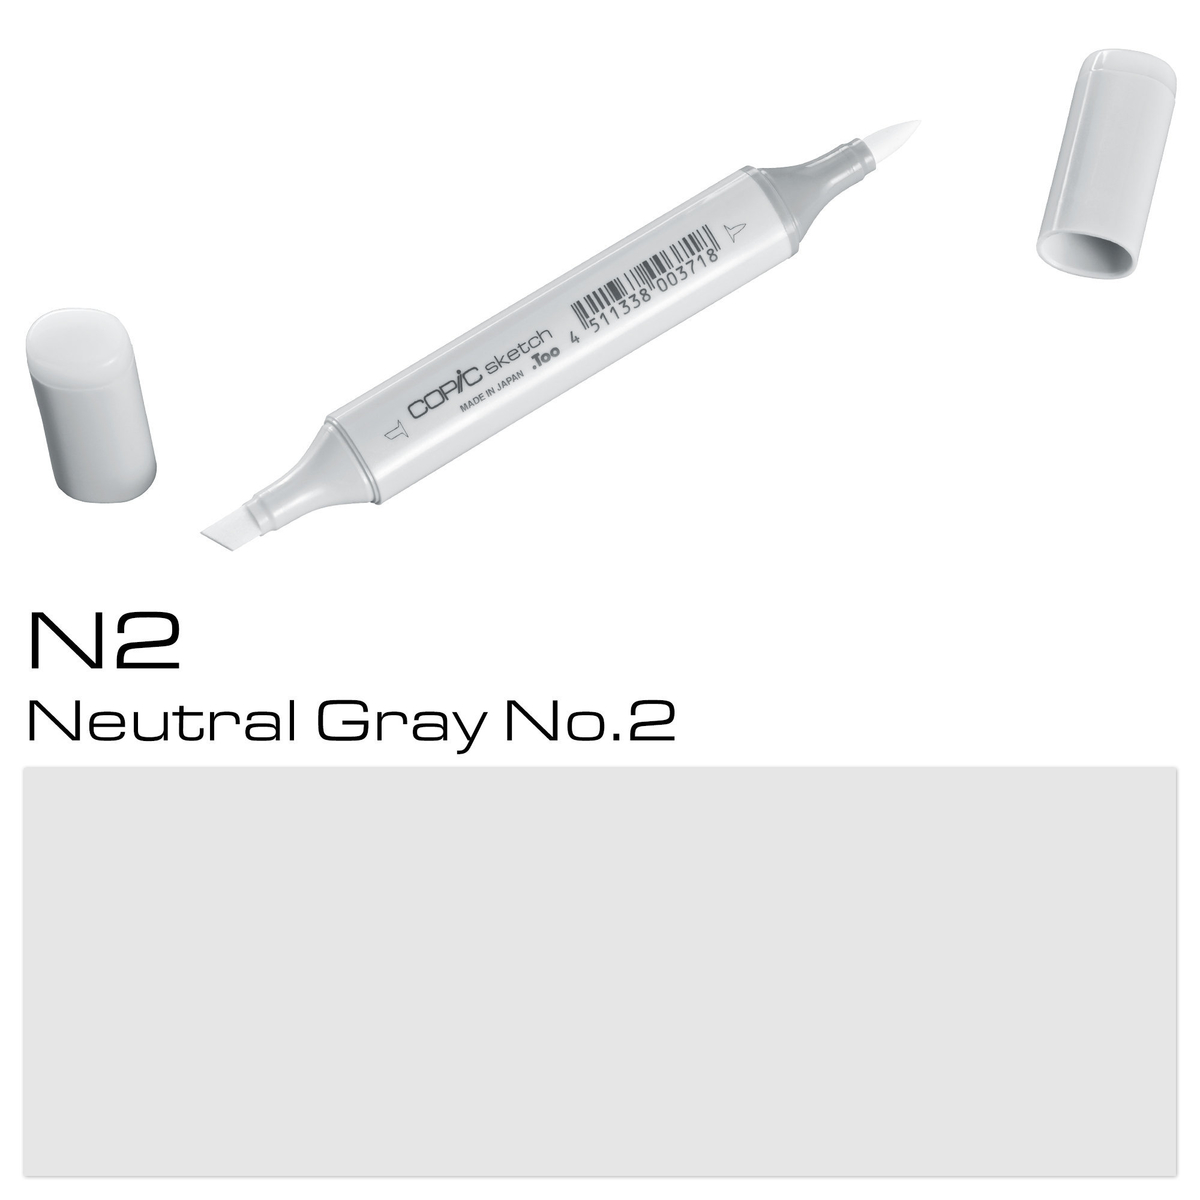 Copic Sketch N 2 neutral gray